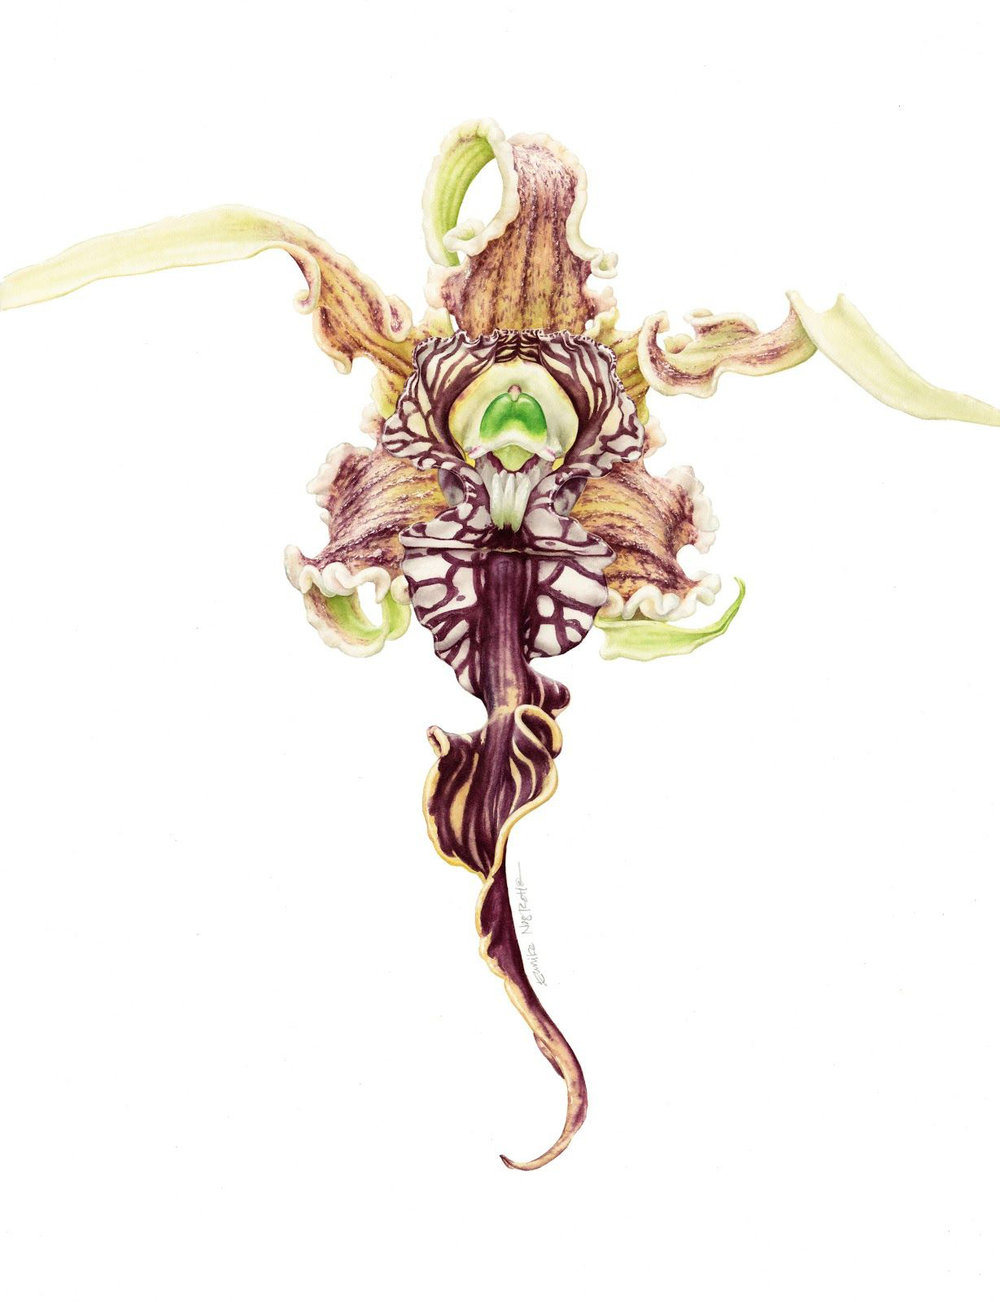 Dendrobium spactabile , watercolor on paper, ©Eunike Nugroho 2015